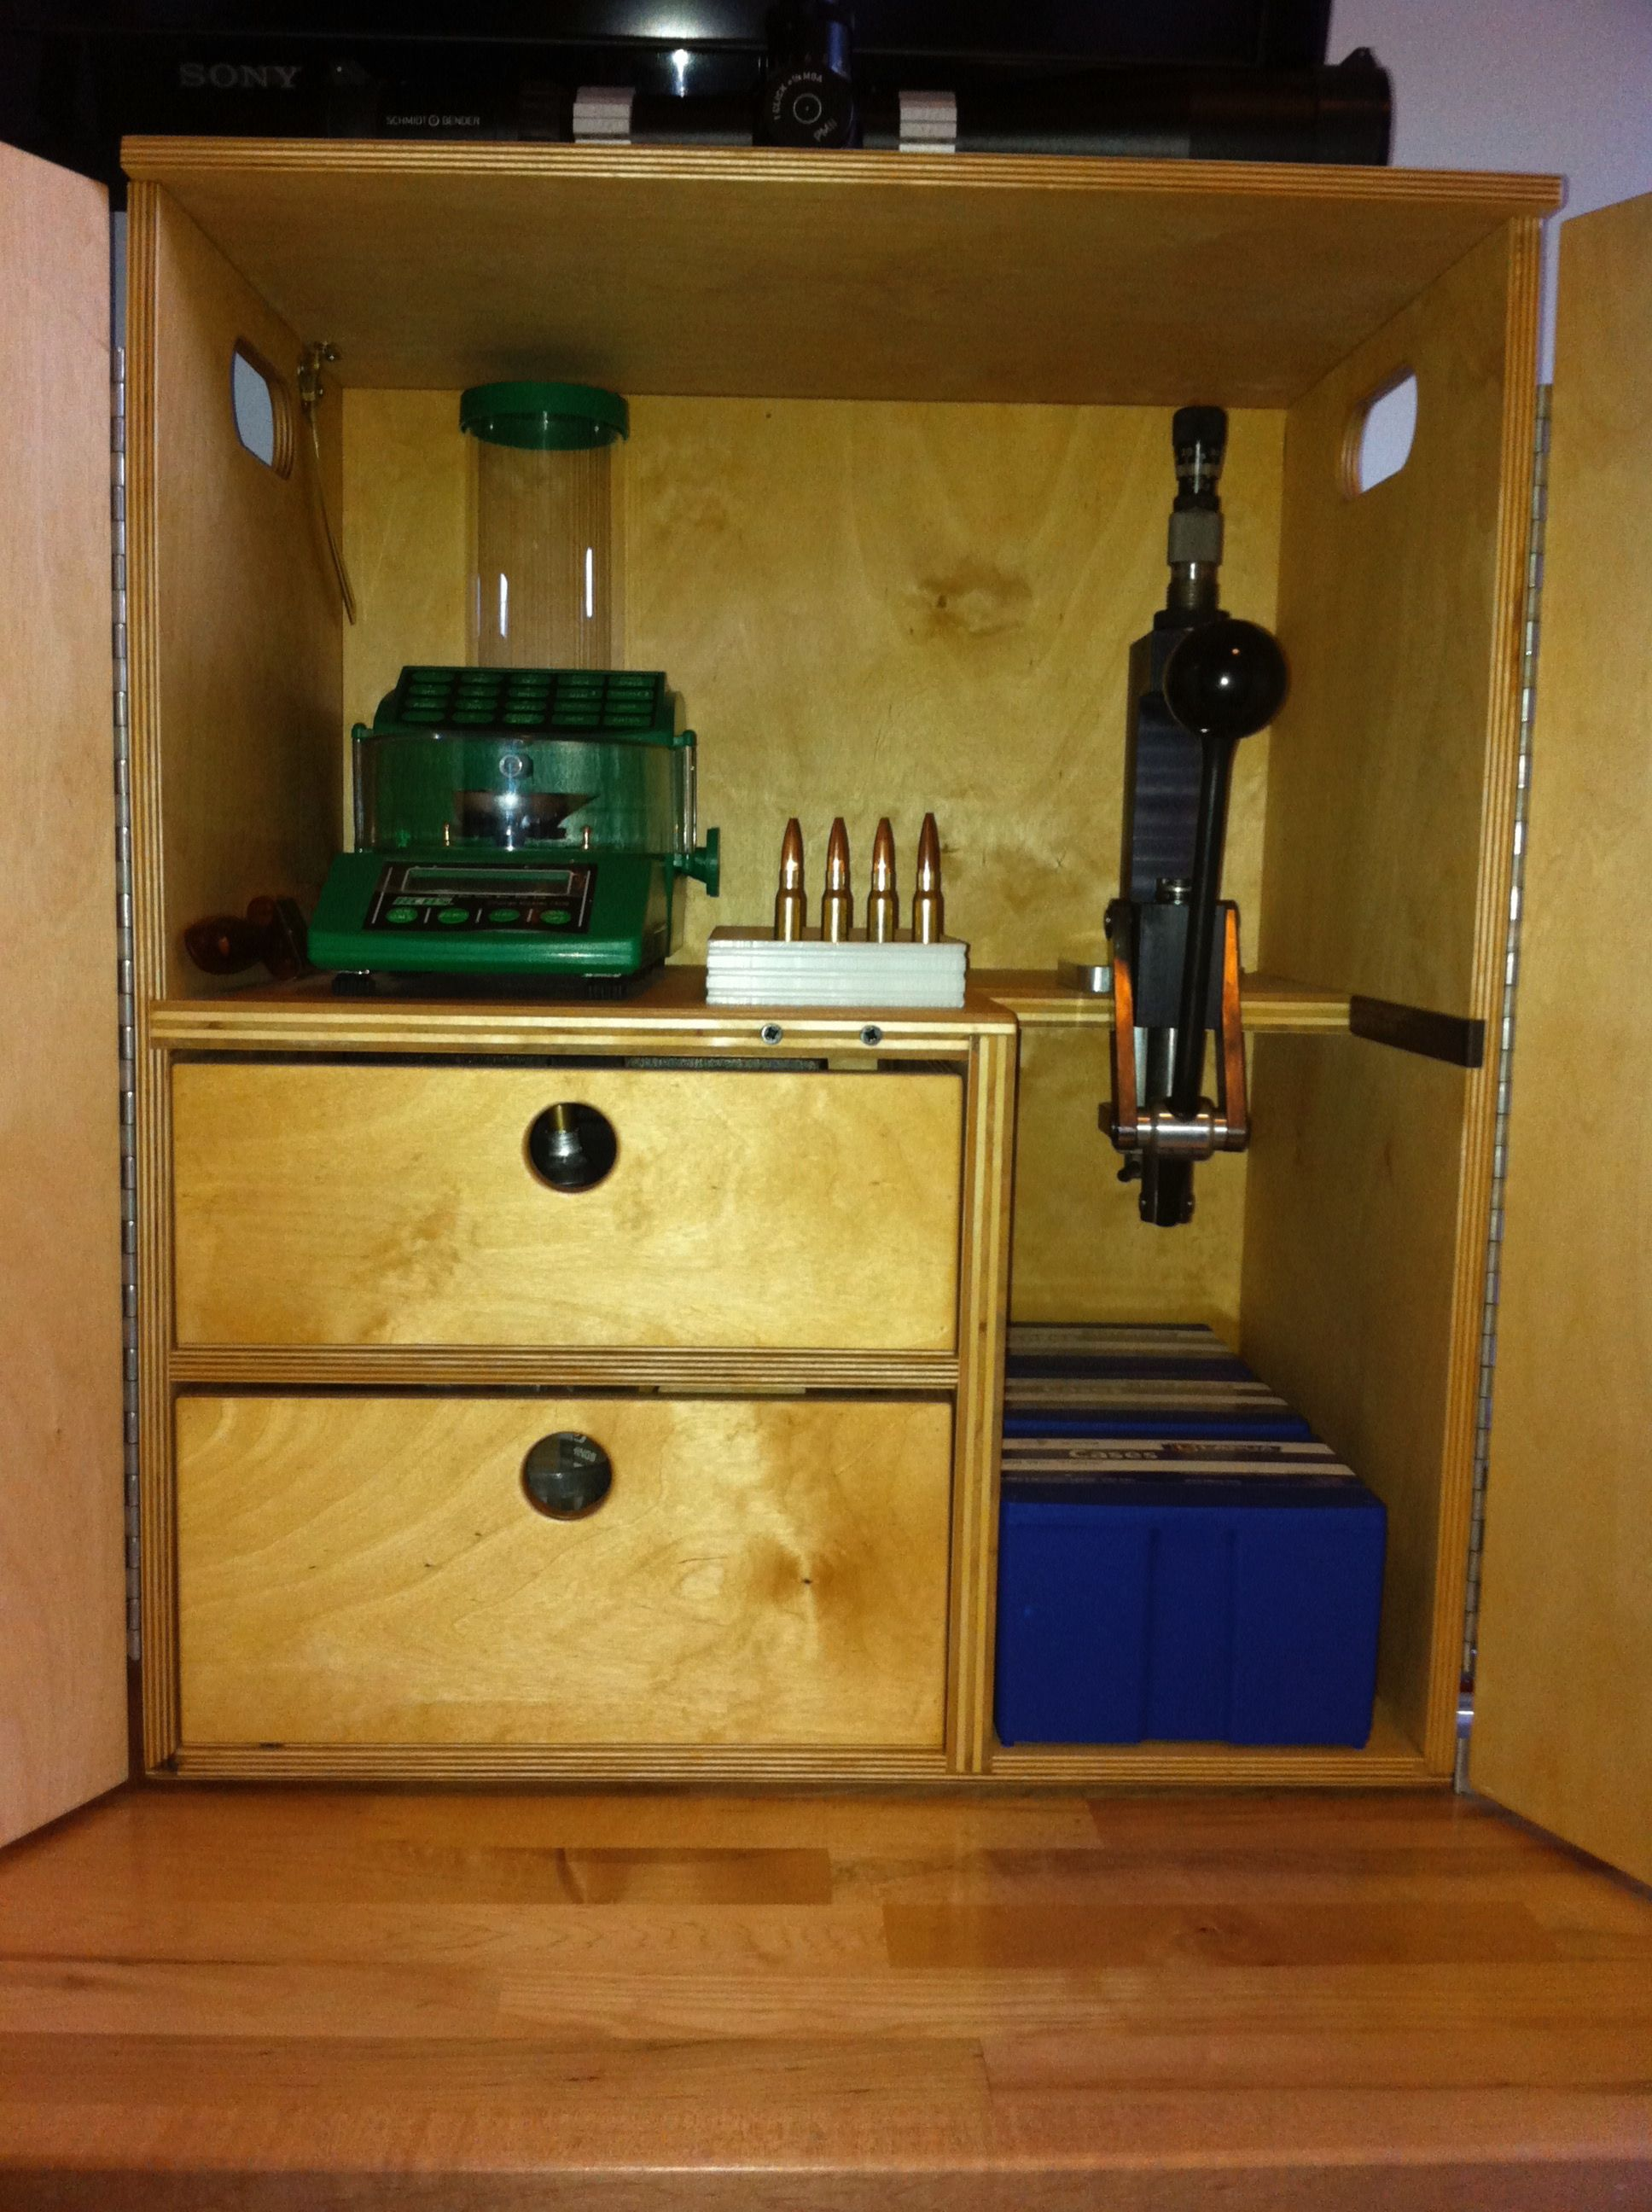 Reloading Box for doing load development at the range  Uses an RCBS